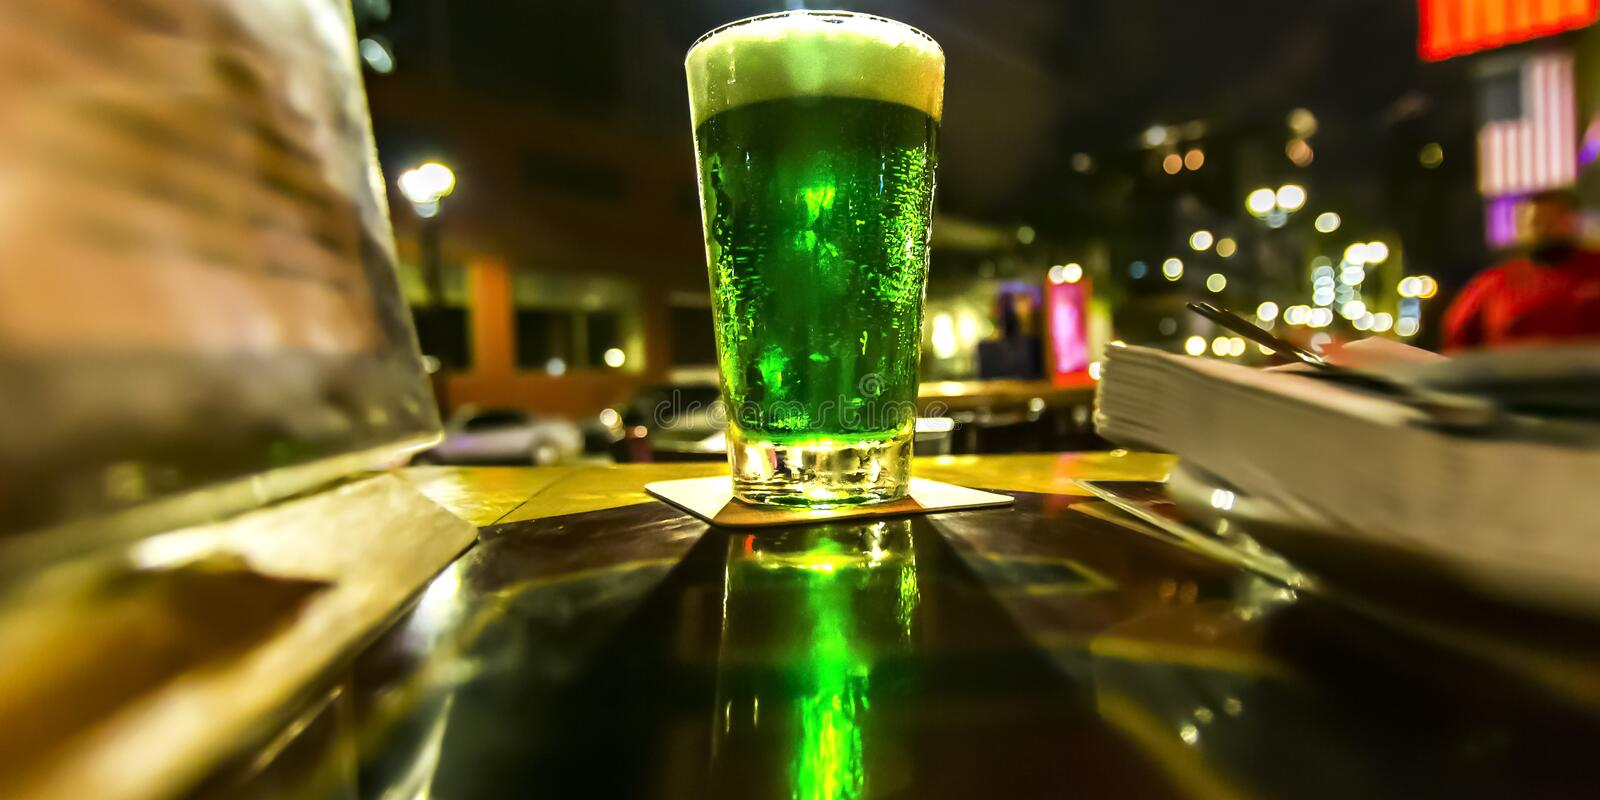 Glass with bright green liquid on a table at night stock photo